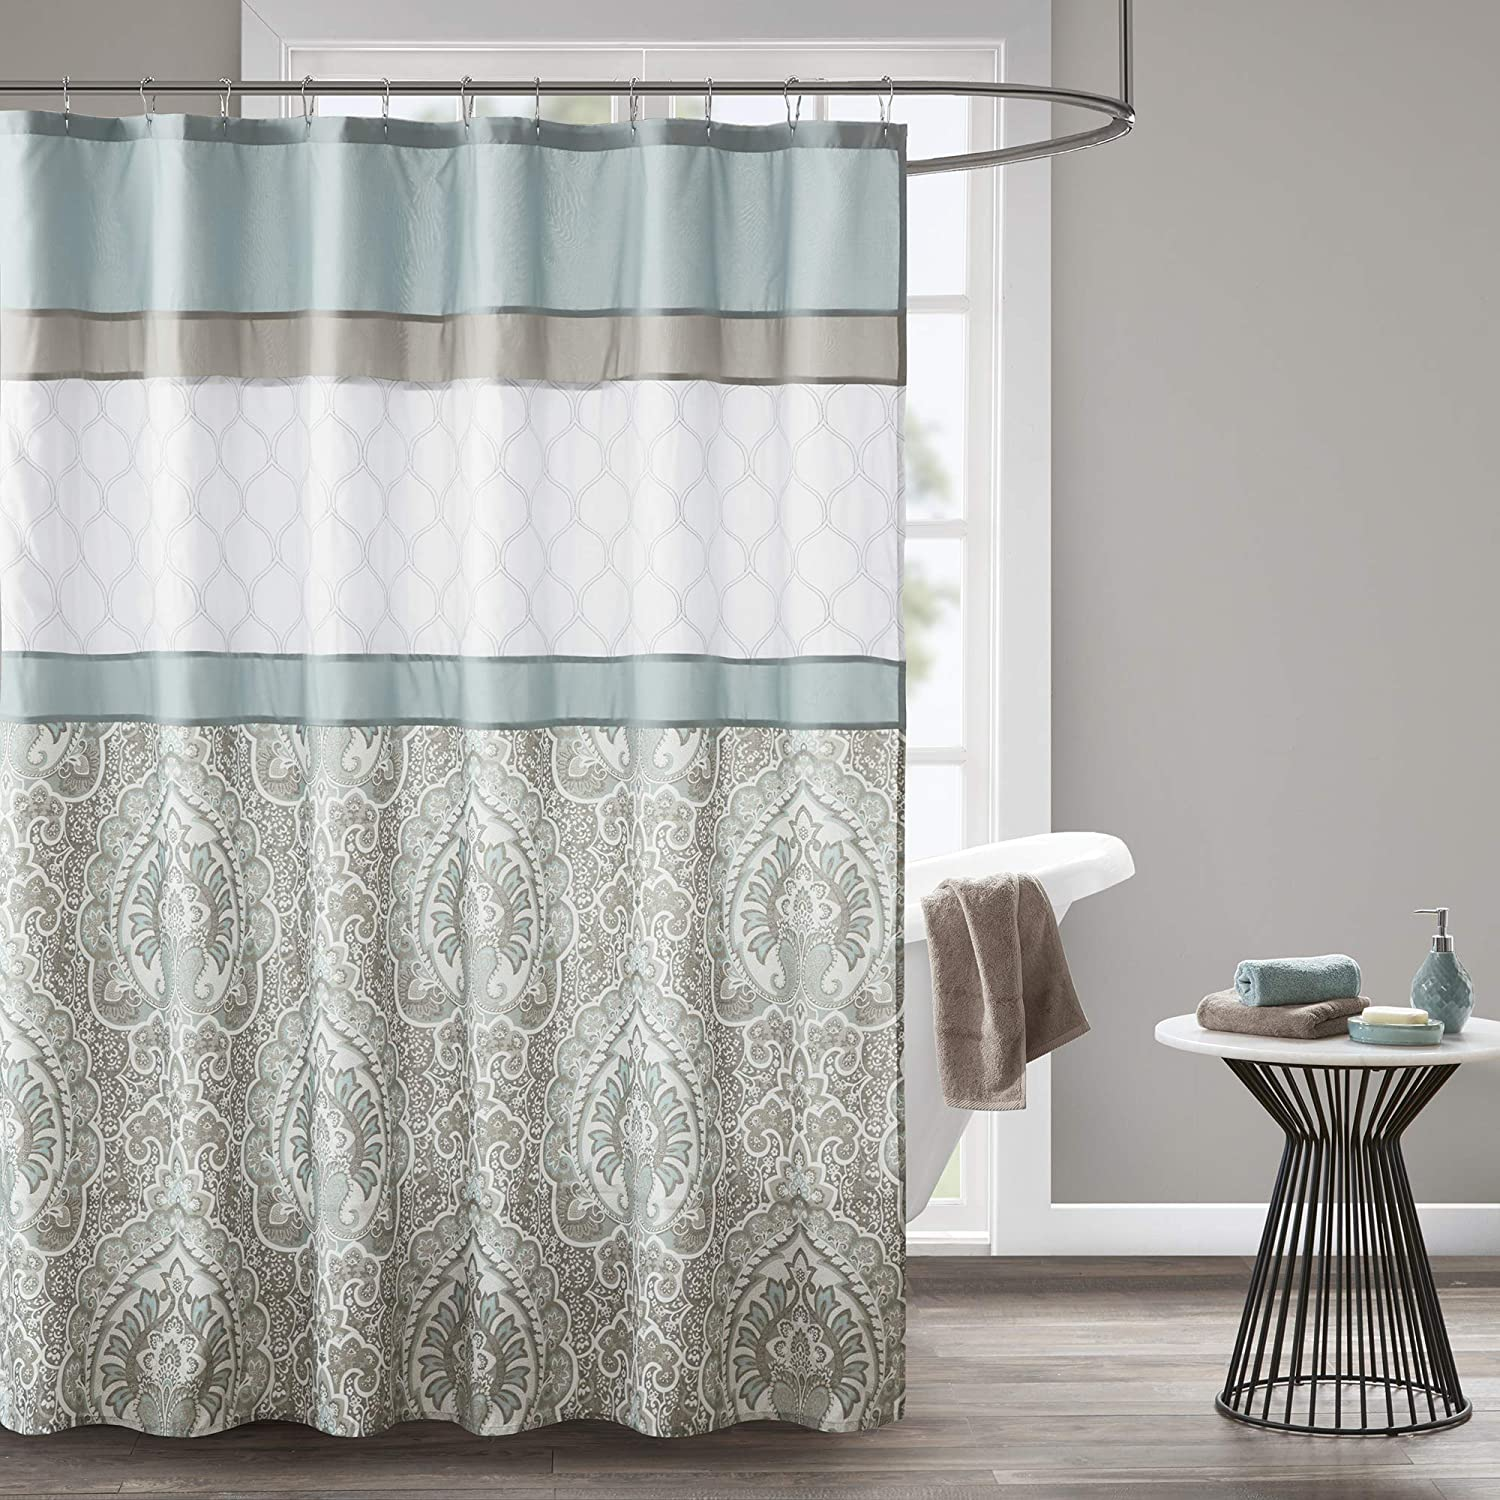 510 Design Popular products Shower Curtain Embroidery Credence Geometric Textured